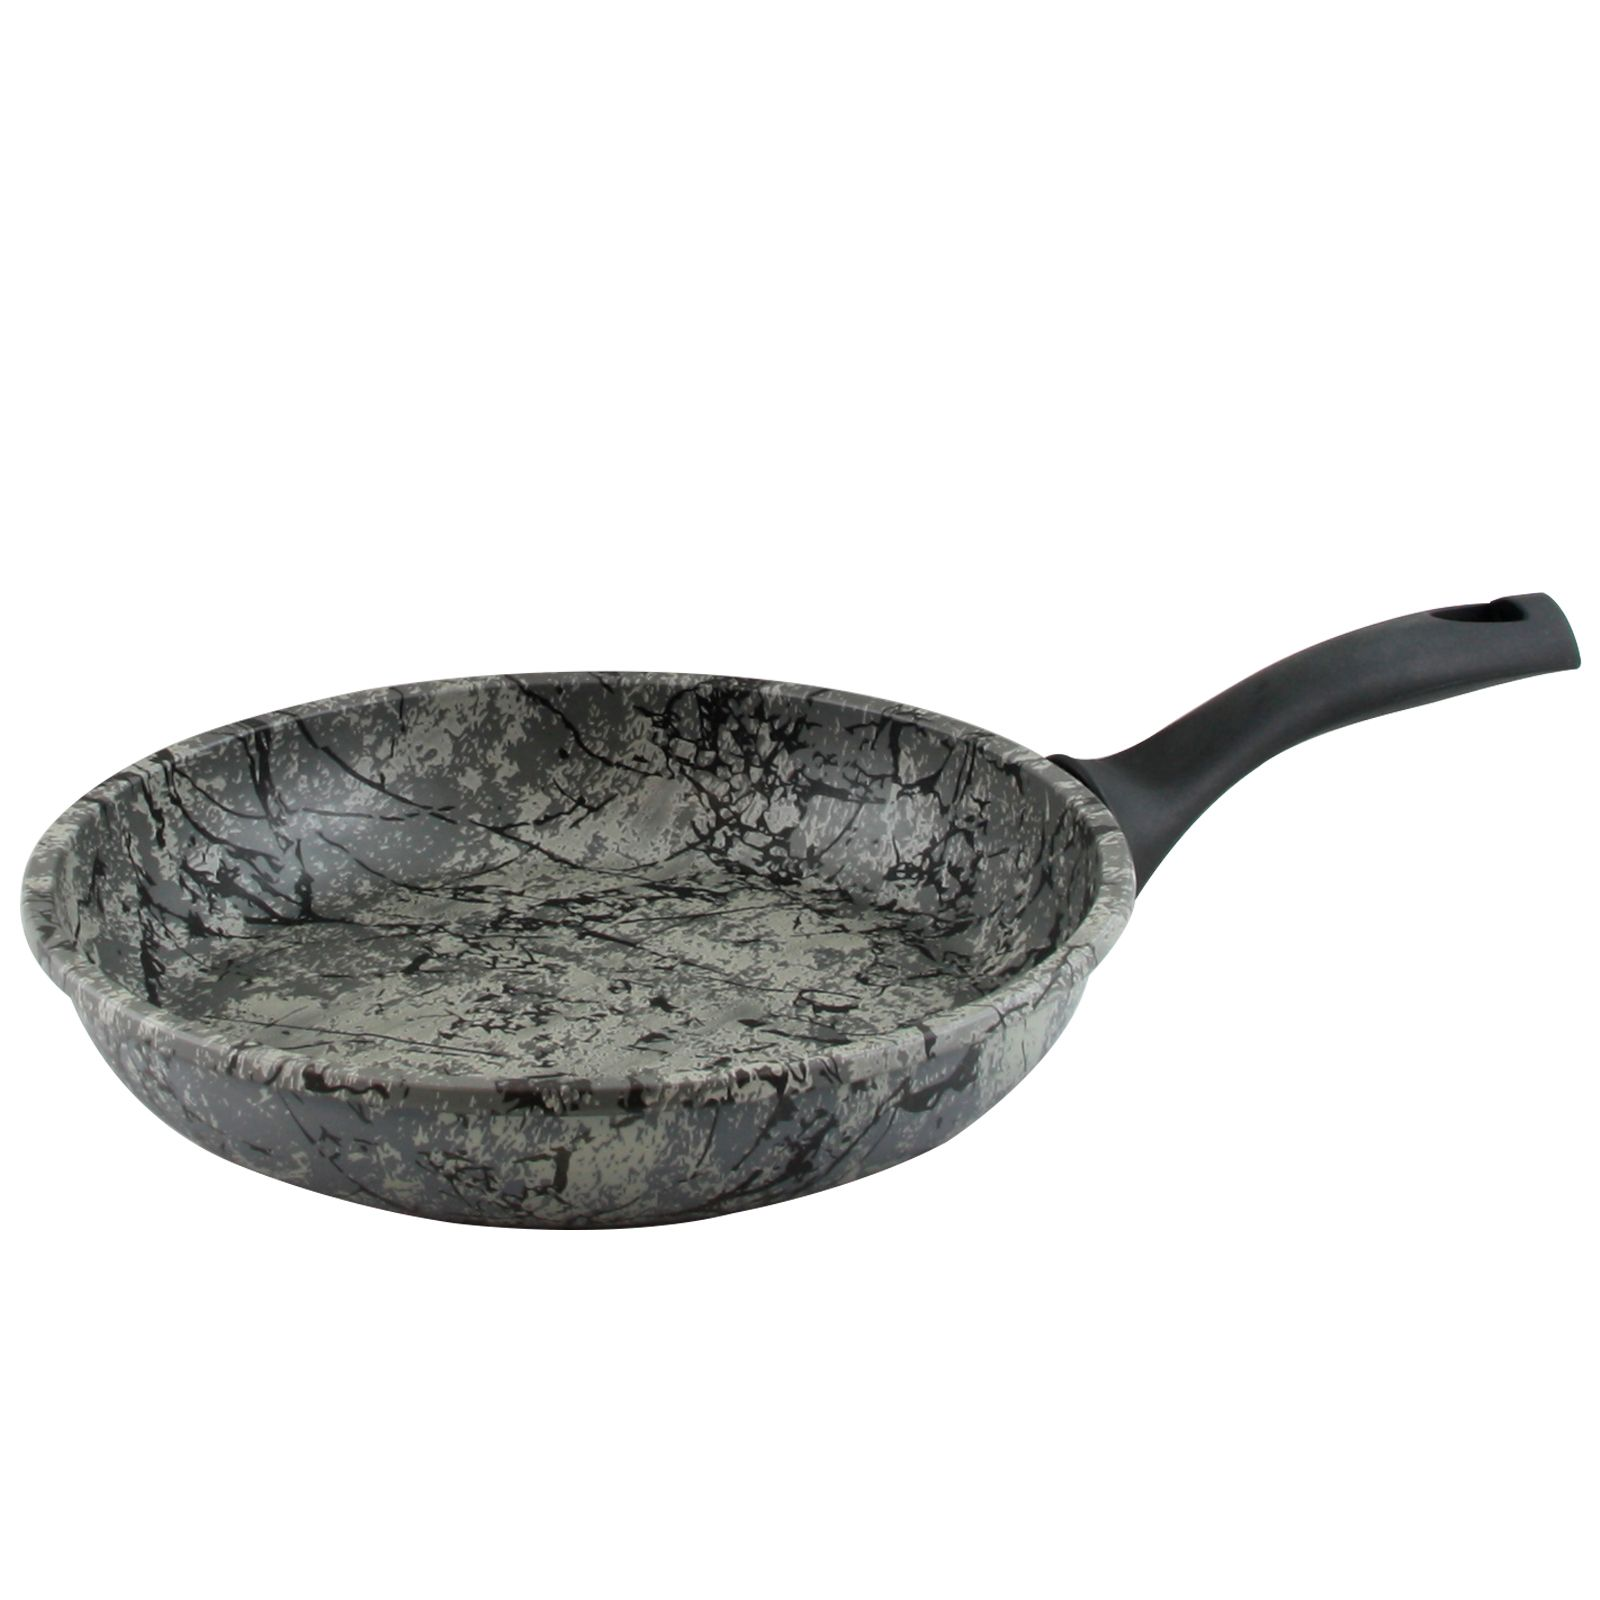 The Carucci 11 Inch Italian Marble Frying Pan Is The Best Fry Pan In The Market Ever Just 11 1 2 Inches This Pan Is Per Italian Marble Frying Pan Cooking Pan